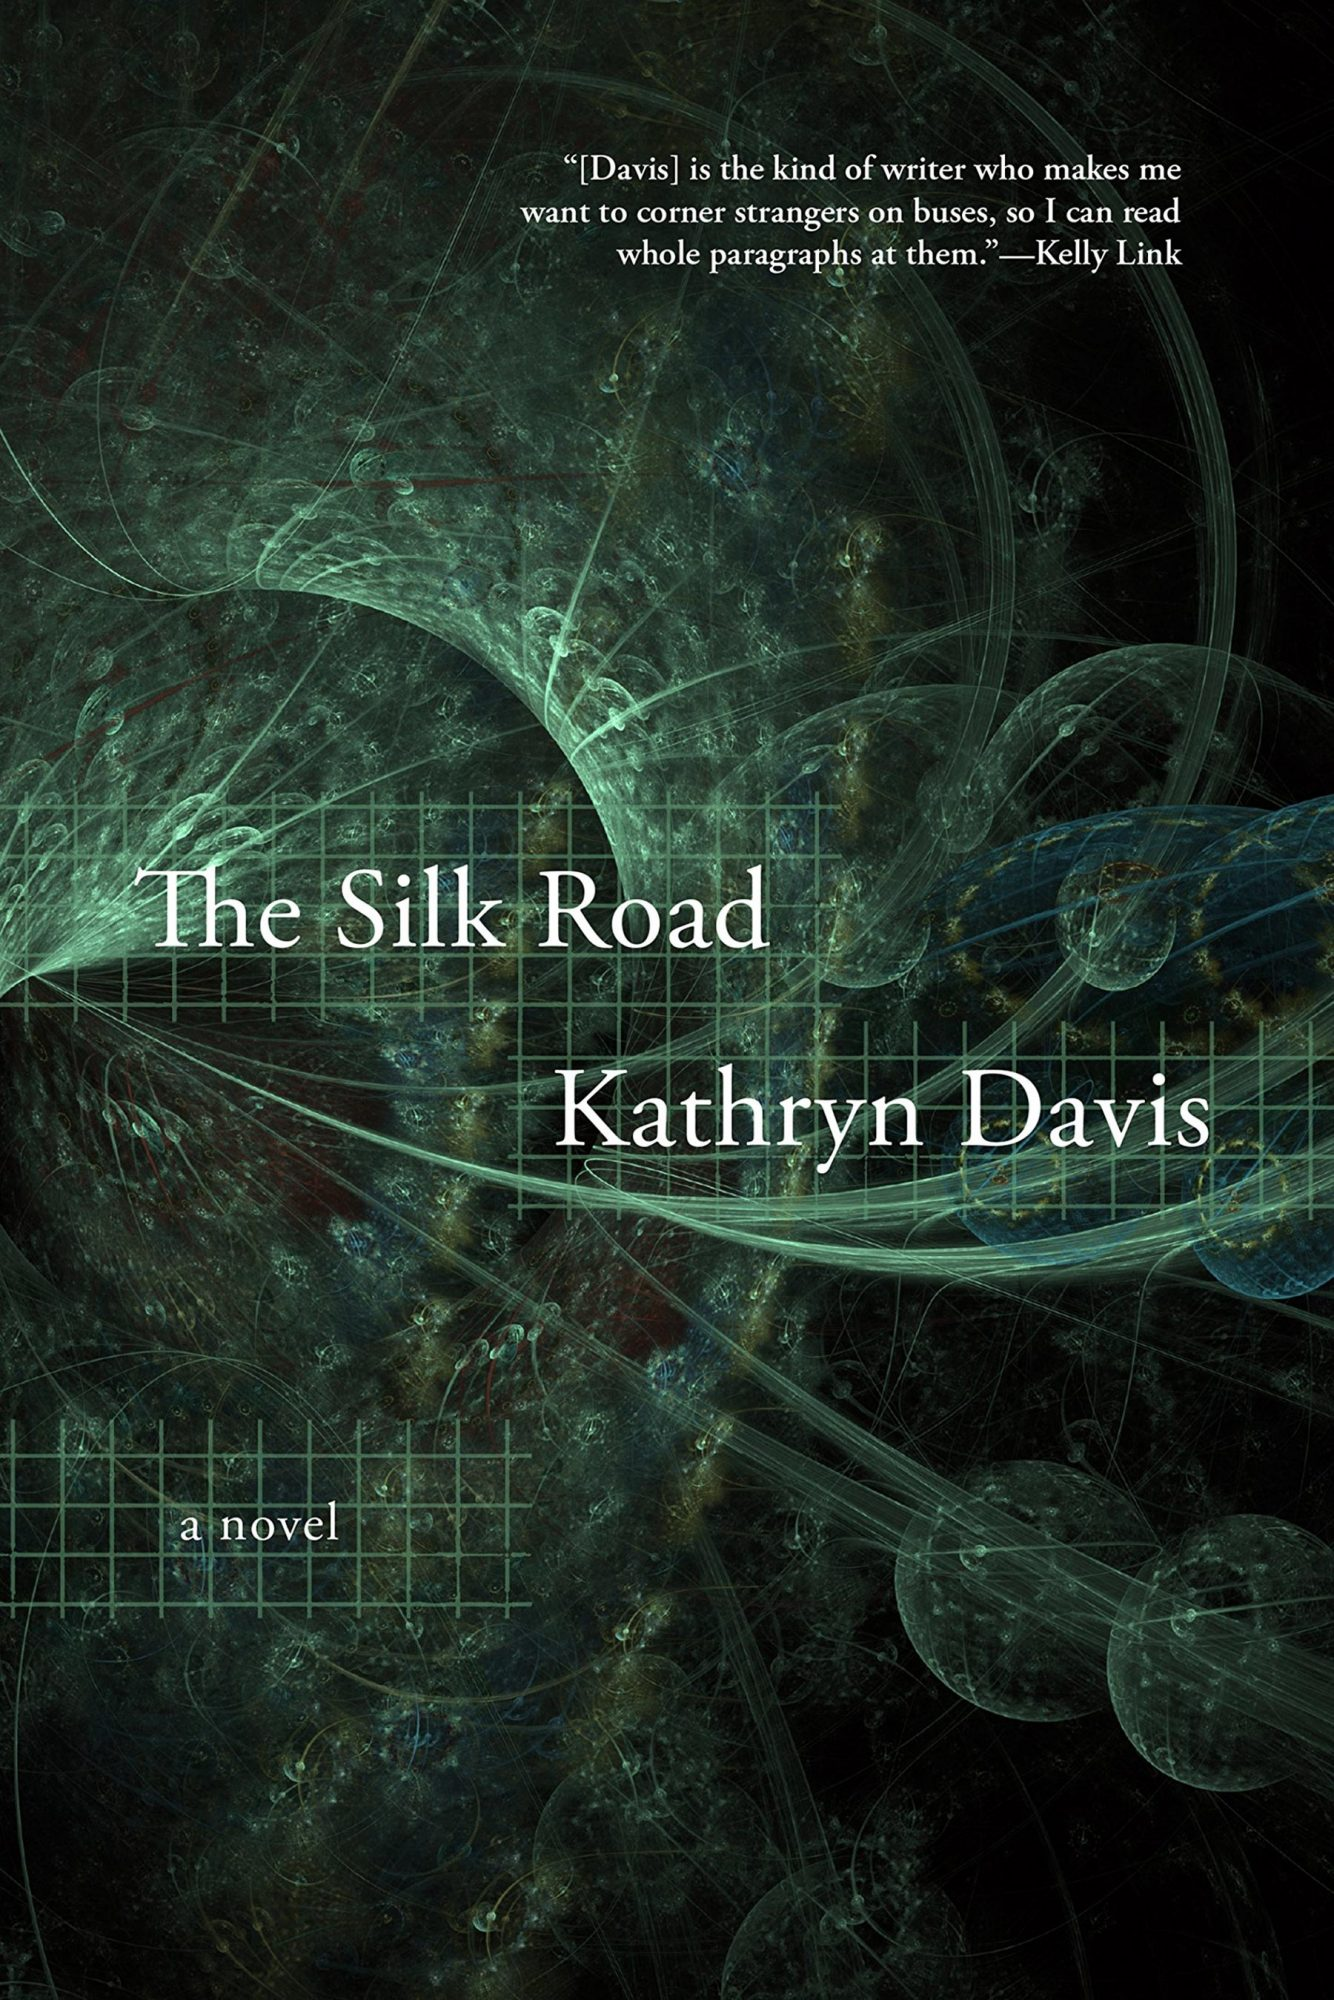 Kathryn Davis, The Silk RoadPublisher: Graywolf Press